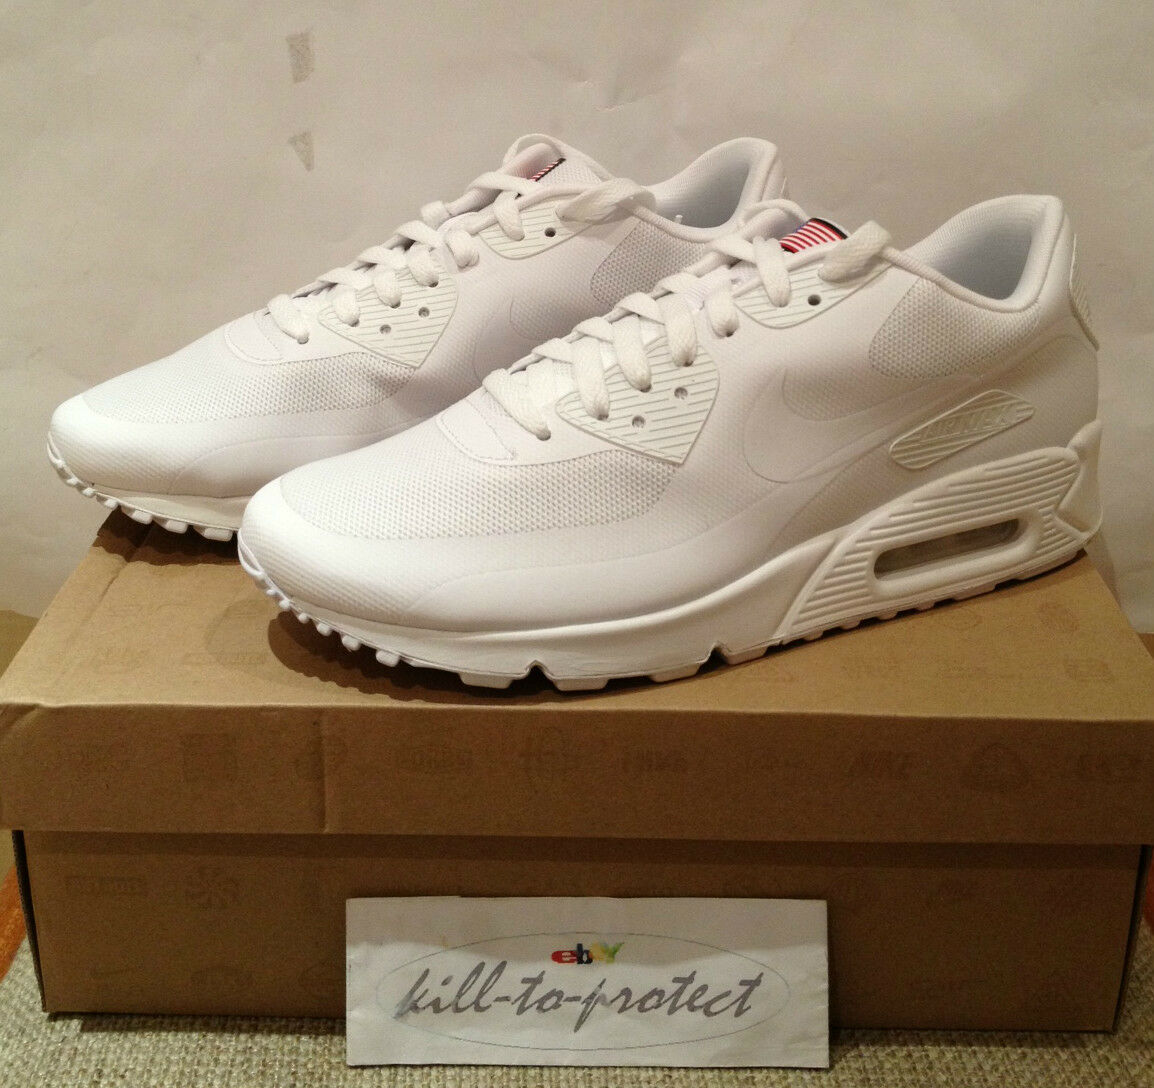 NIKE AIR MAX 90 HYPERFUSE USA White US UK6 7 8 9 10 11 12 13 QS 613841-110 2013